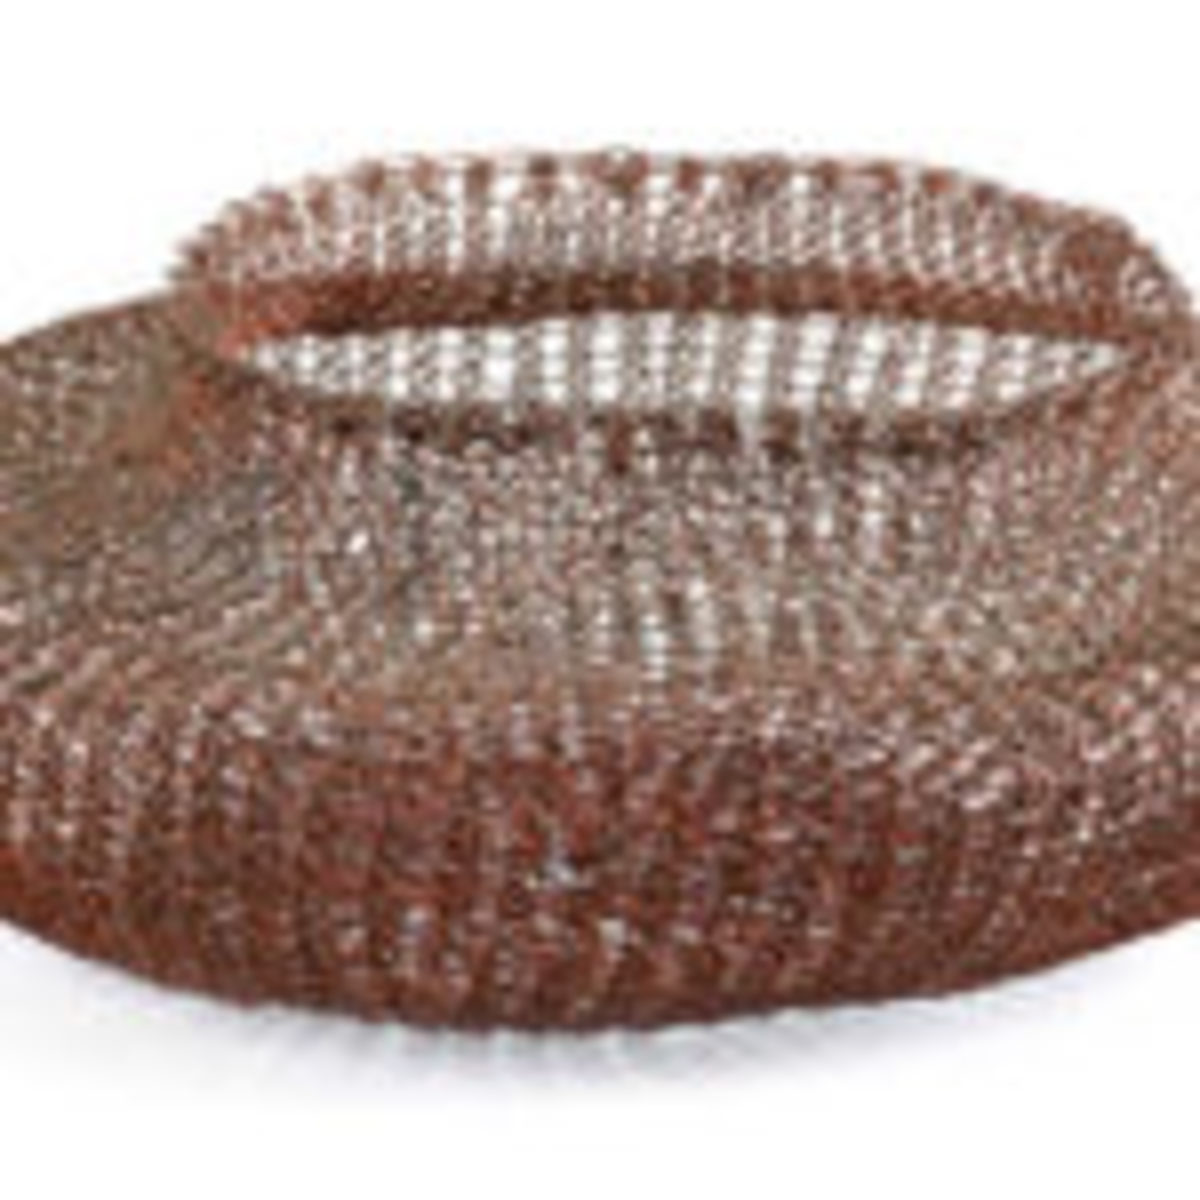 Woven enameled copper wire basket by Ruth Asawa, $72,000